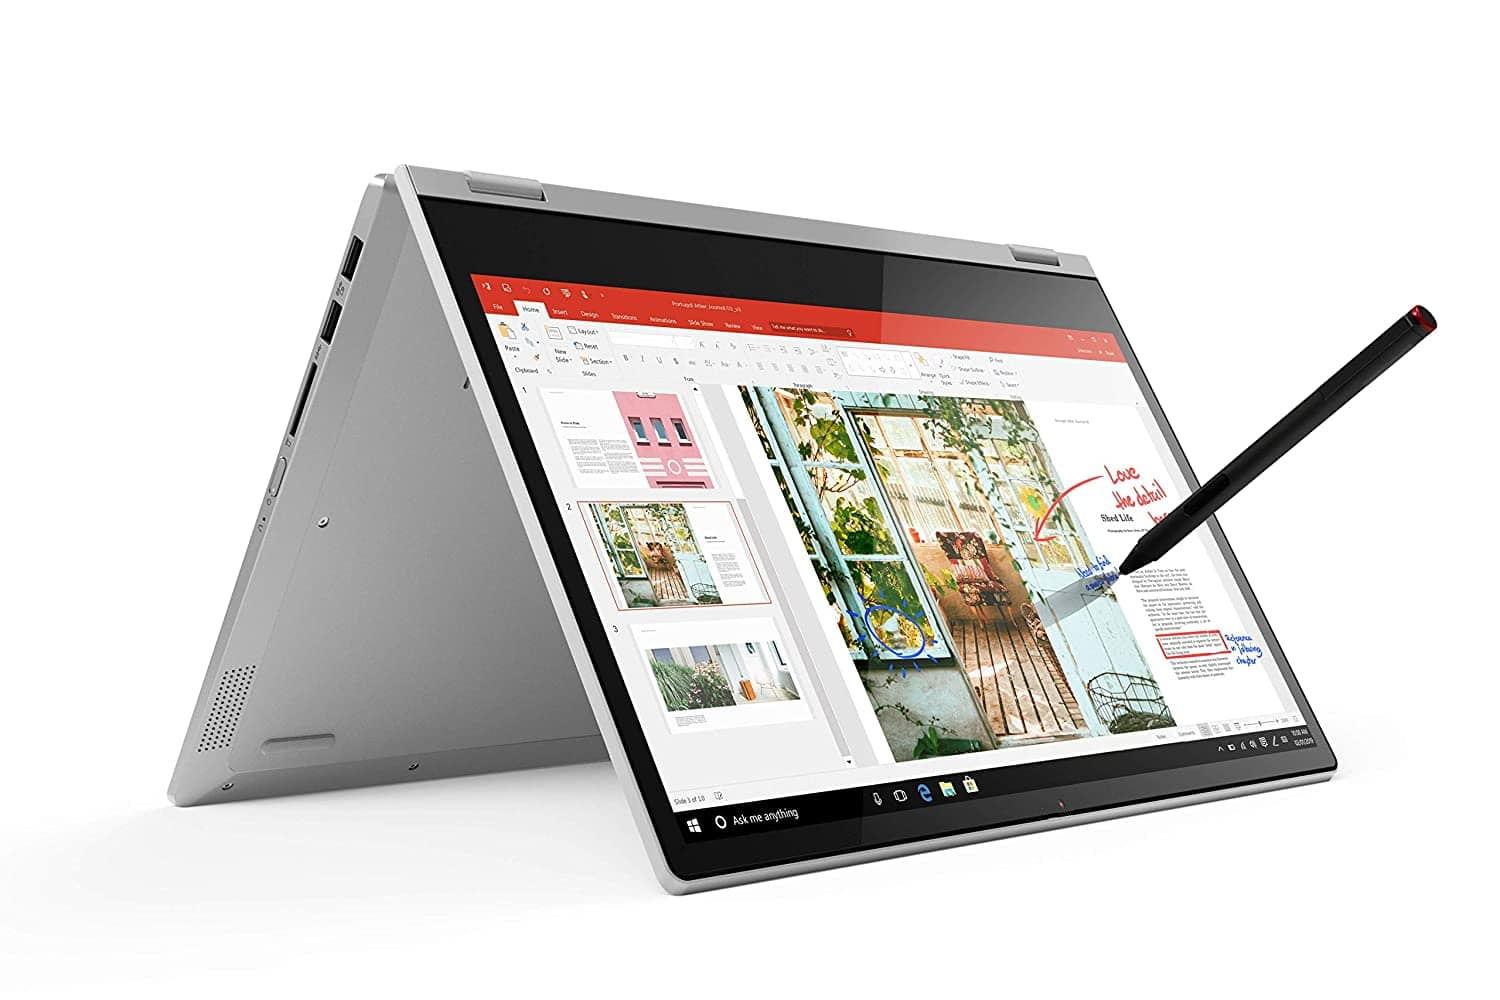 Lenovo Ideapad C340 – Rs 44,990 – This one gives you a 14-inch touchscreen display with a resolution of 1920 x 1080 pixels. It is powered by the 10th generation Intel Core i3 processor, 4GB RAM and has 256GB of fast SSD storage. While the Ideapad C340 looks plain and simple, it has a versatile design allowing you to rotate its screen as per requirement. It weighs just 1.65kg and yet is capable of delivering up to 8 hours of battery backup. Also, it supports rapid charging, so you can get up to 80% battery in just one hour of charging. Other handy features include a backlit keyboard, webcam with privacy shutter, stereo speakers, and Windows 10 Home operating system. You can add the optional digital pen for handwriting and drawing.